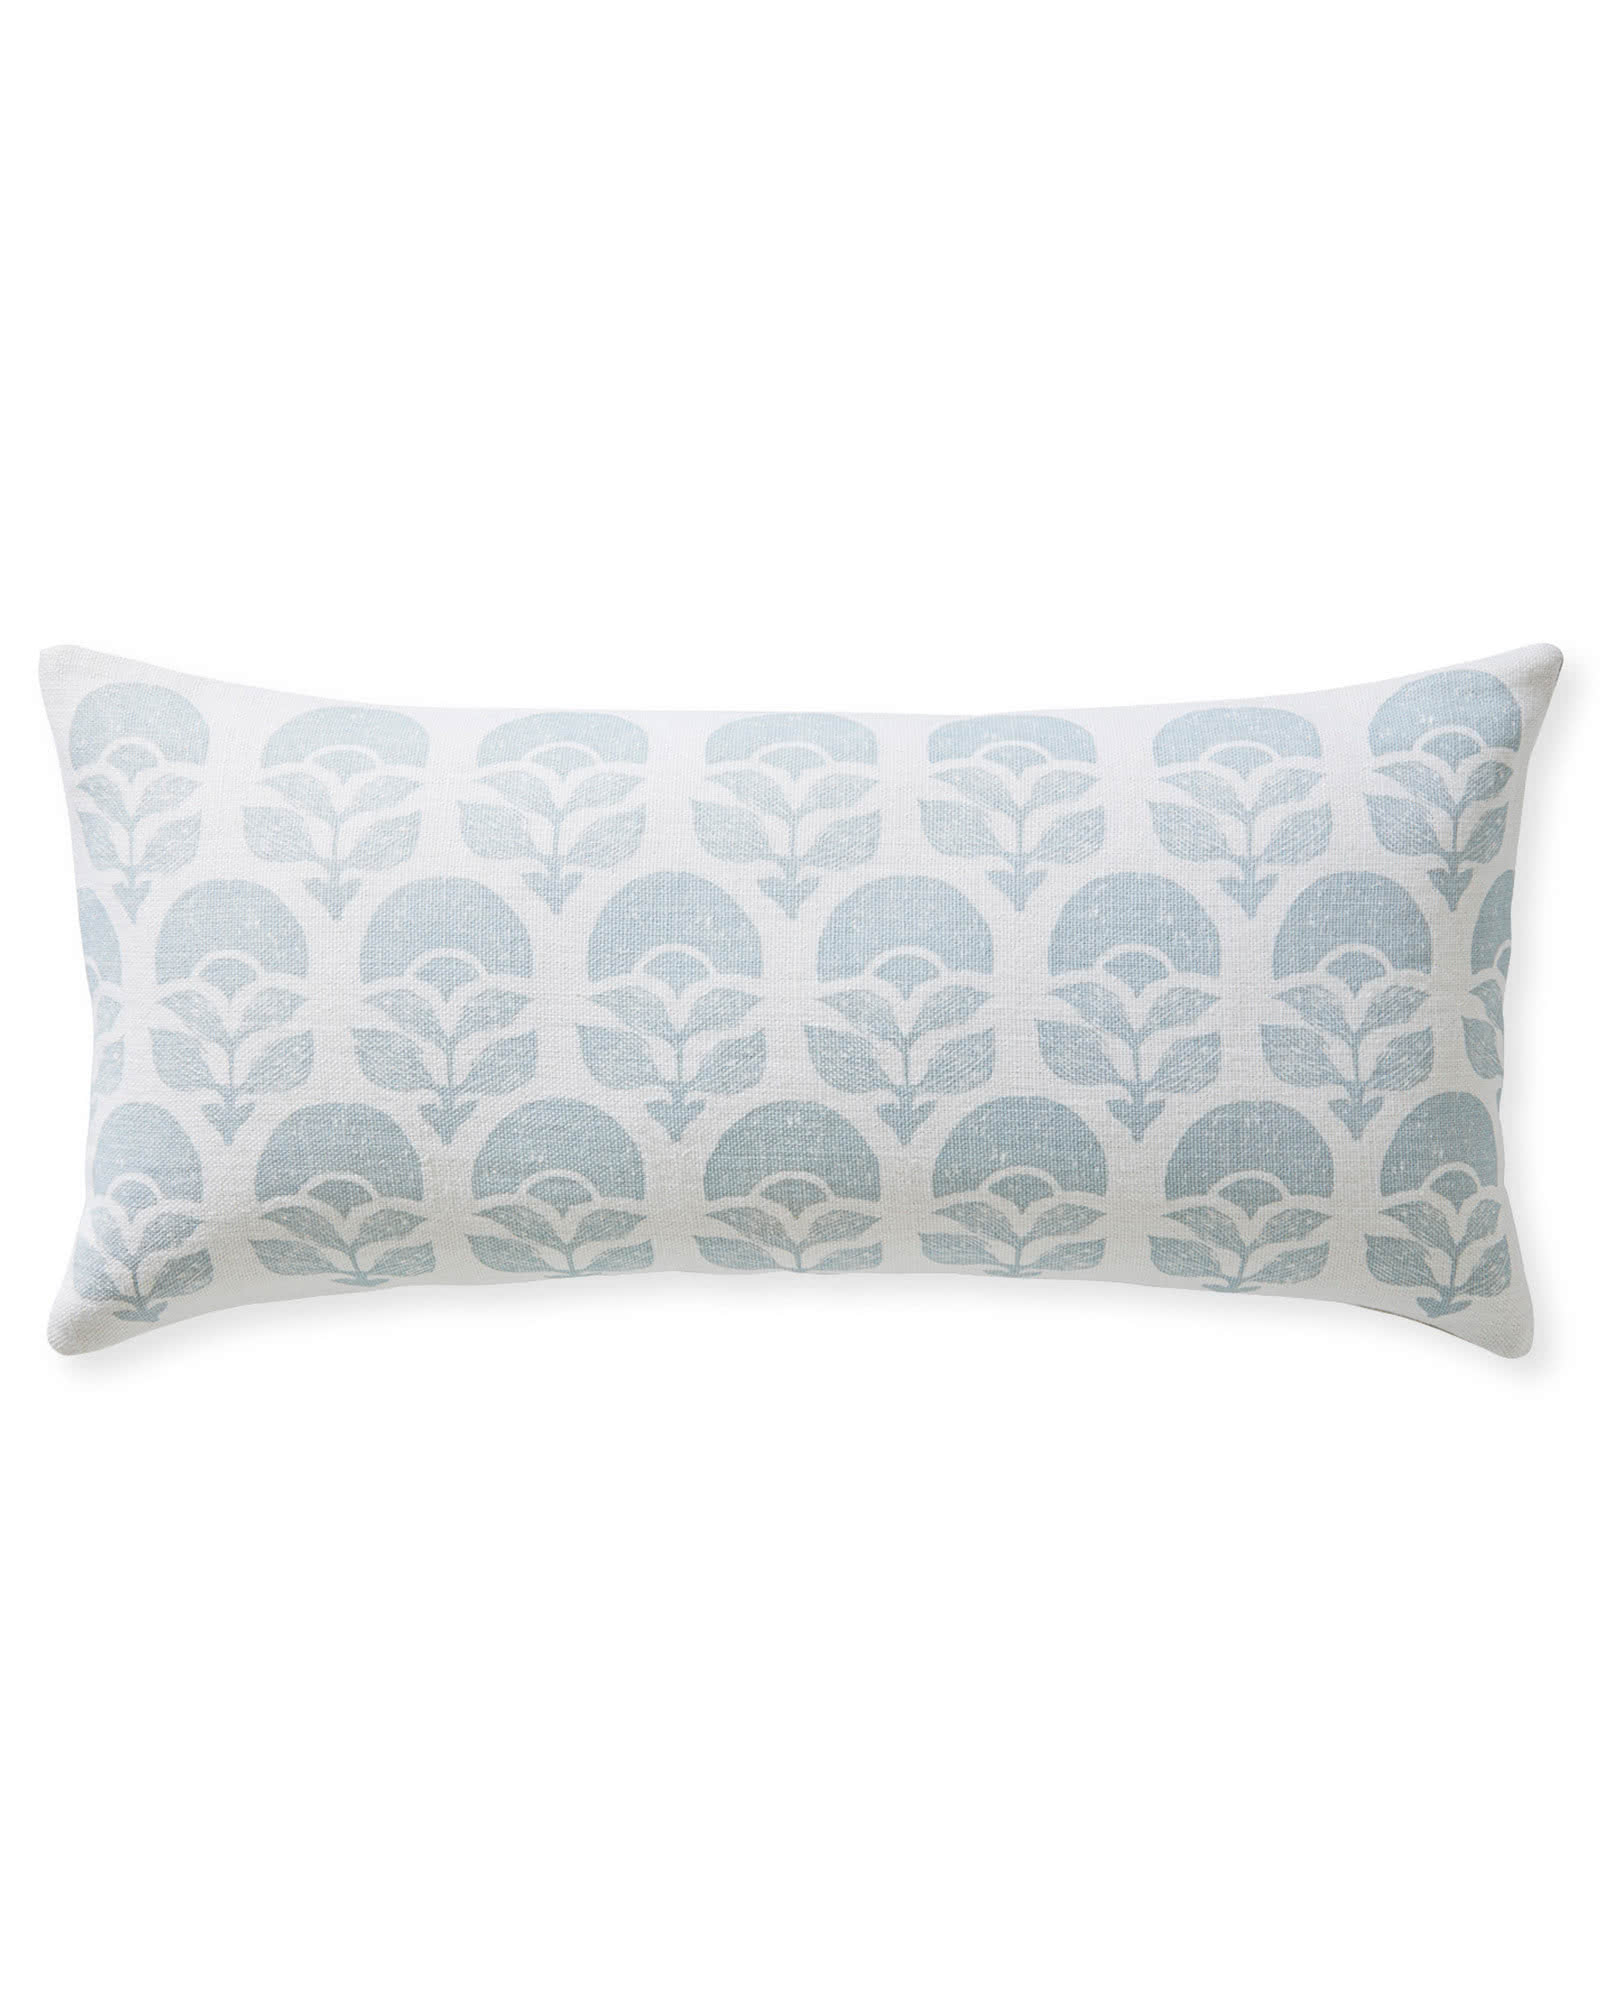 Larkspur Printed Pillow Cover